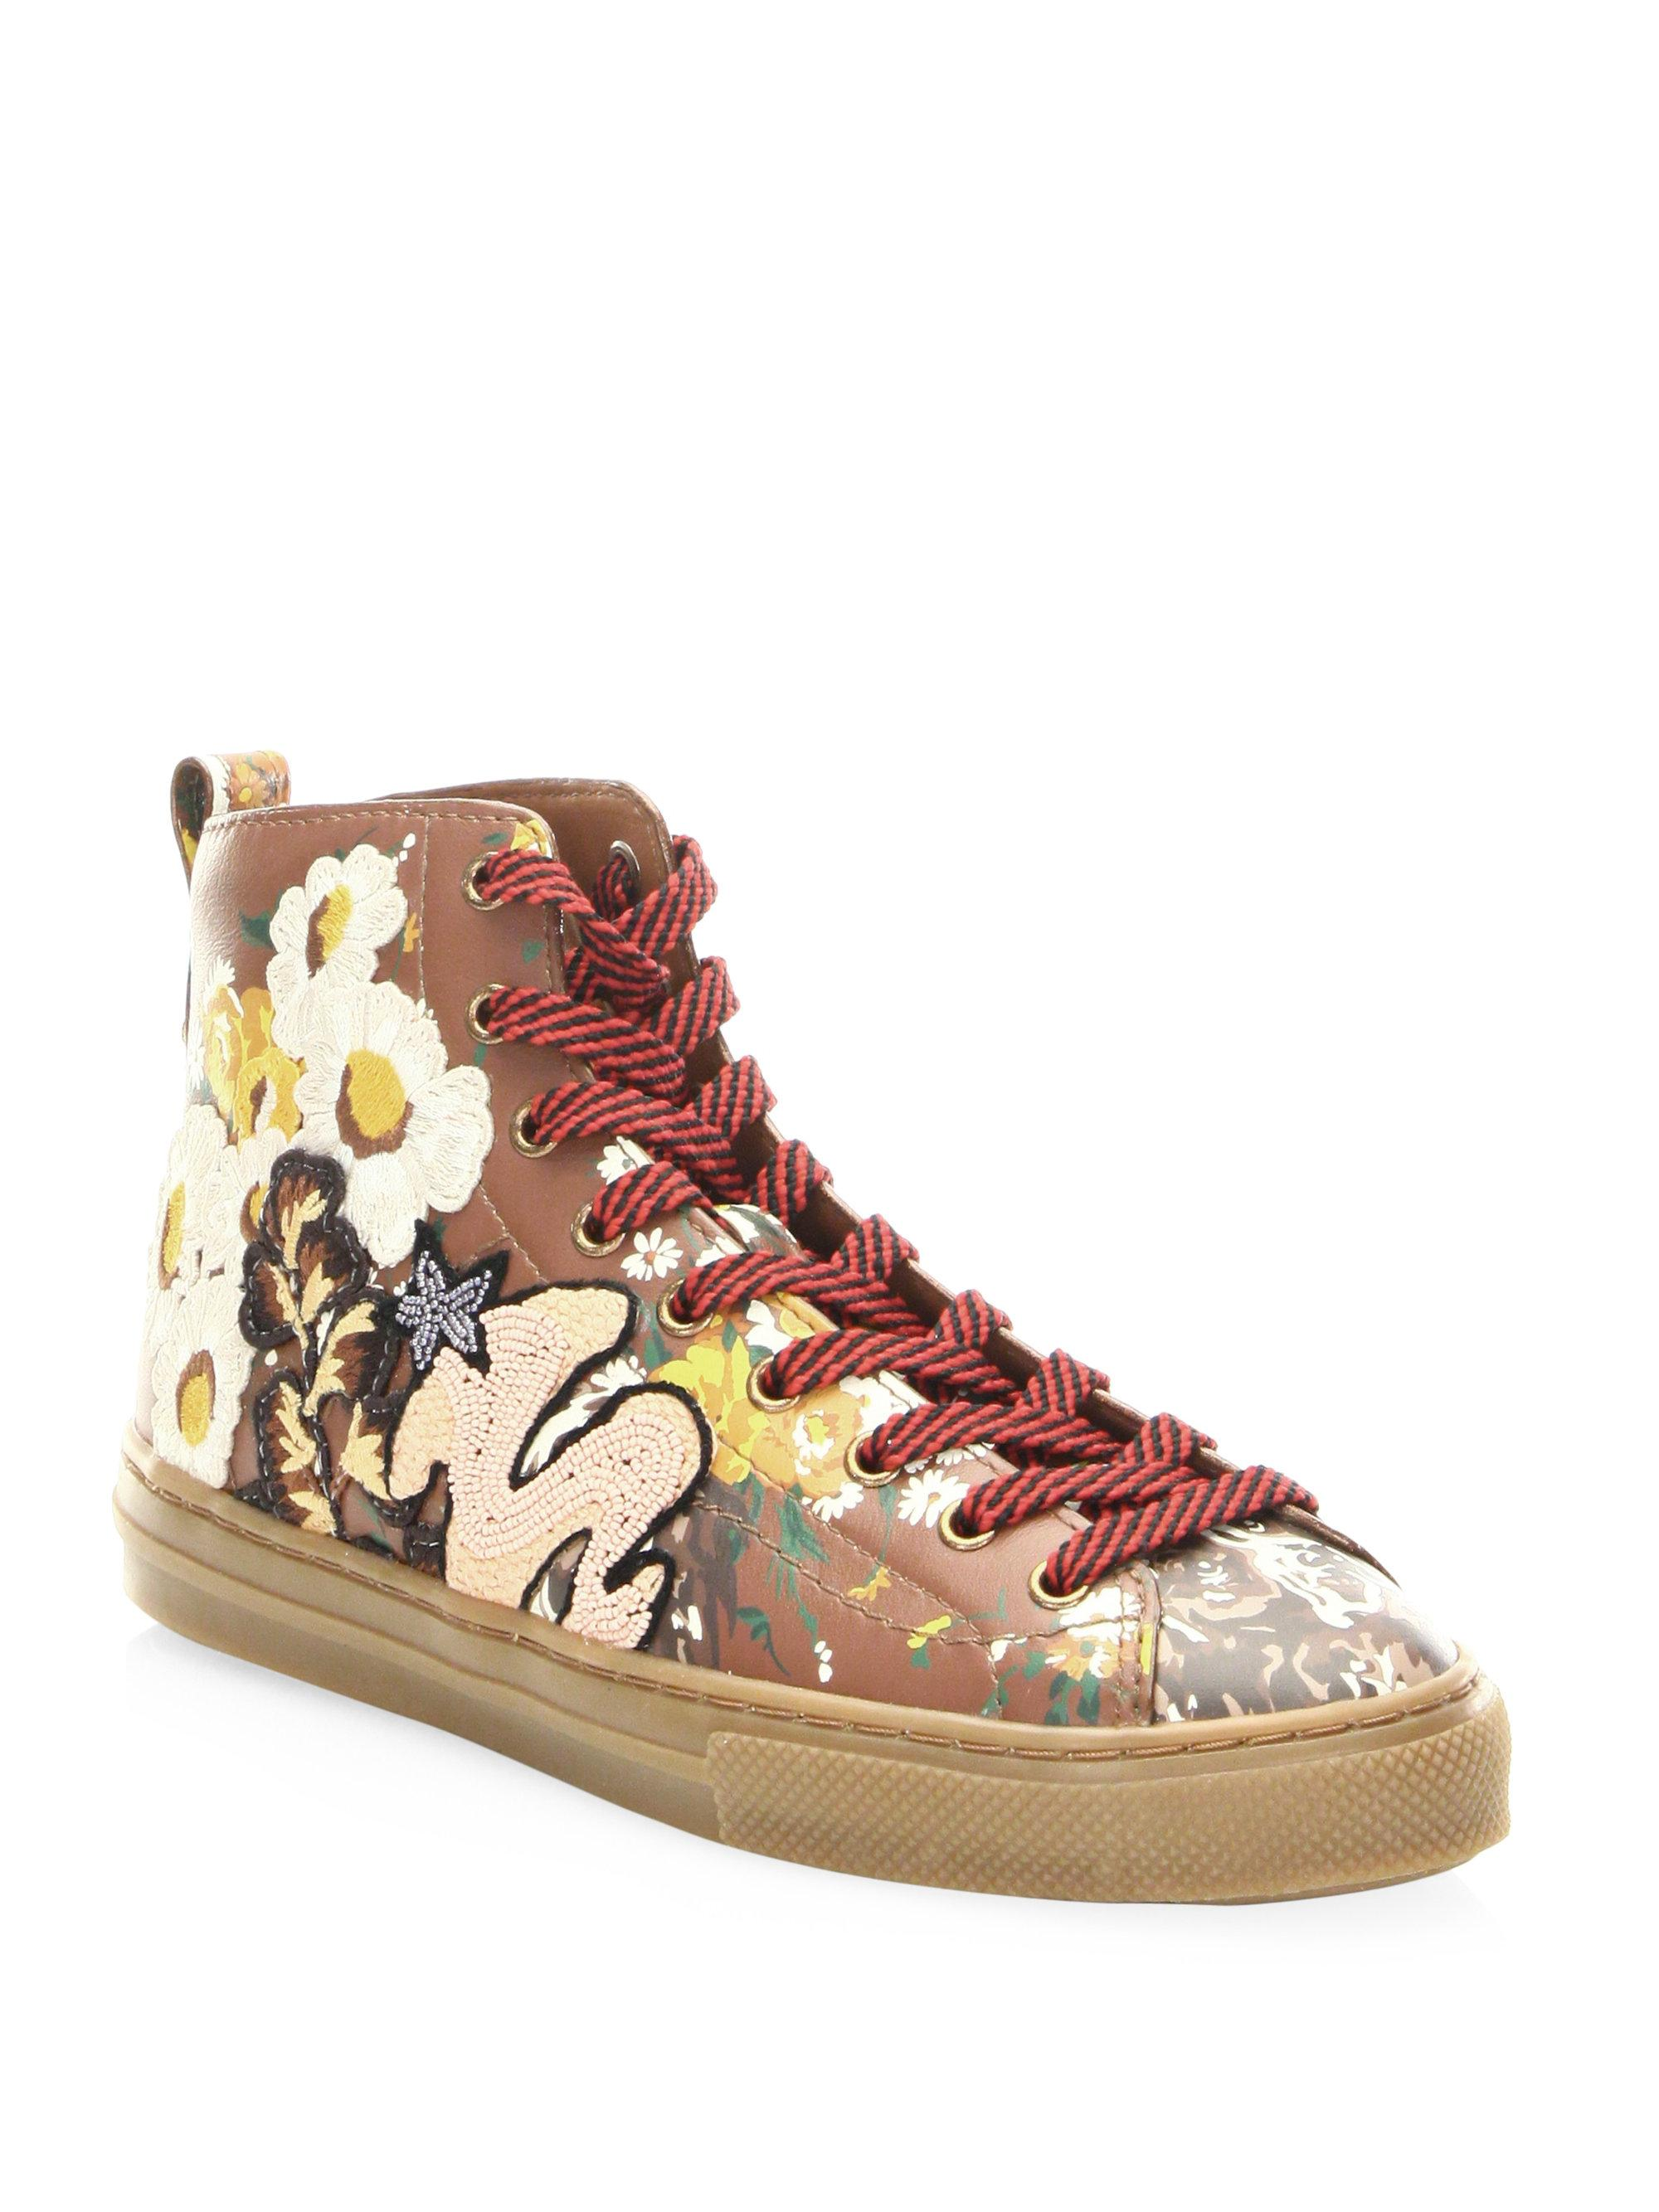 Coach Floral Leather High-Top Sneakers YAxWJbCMHW